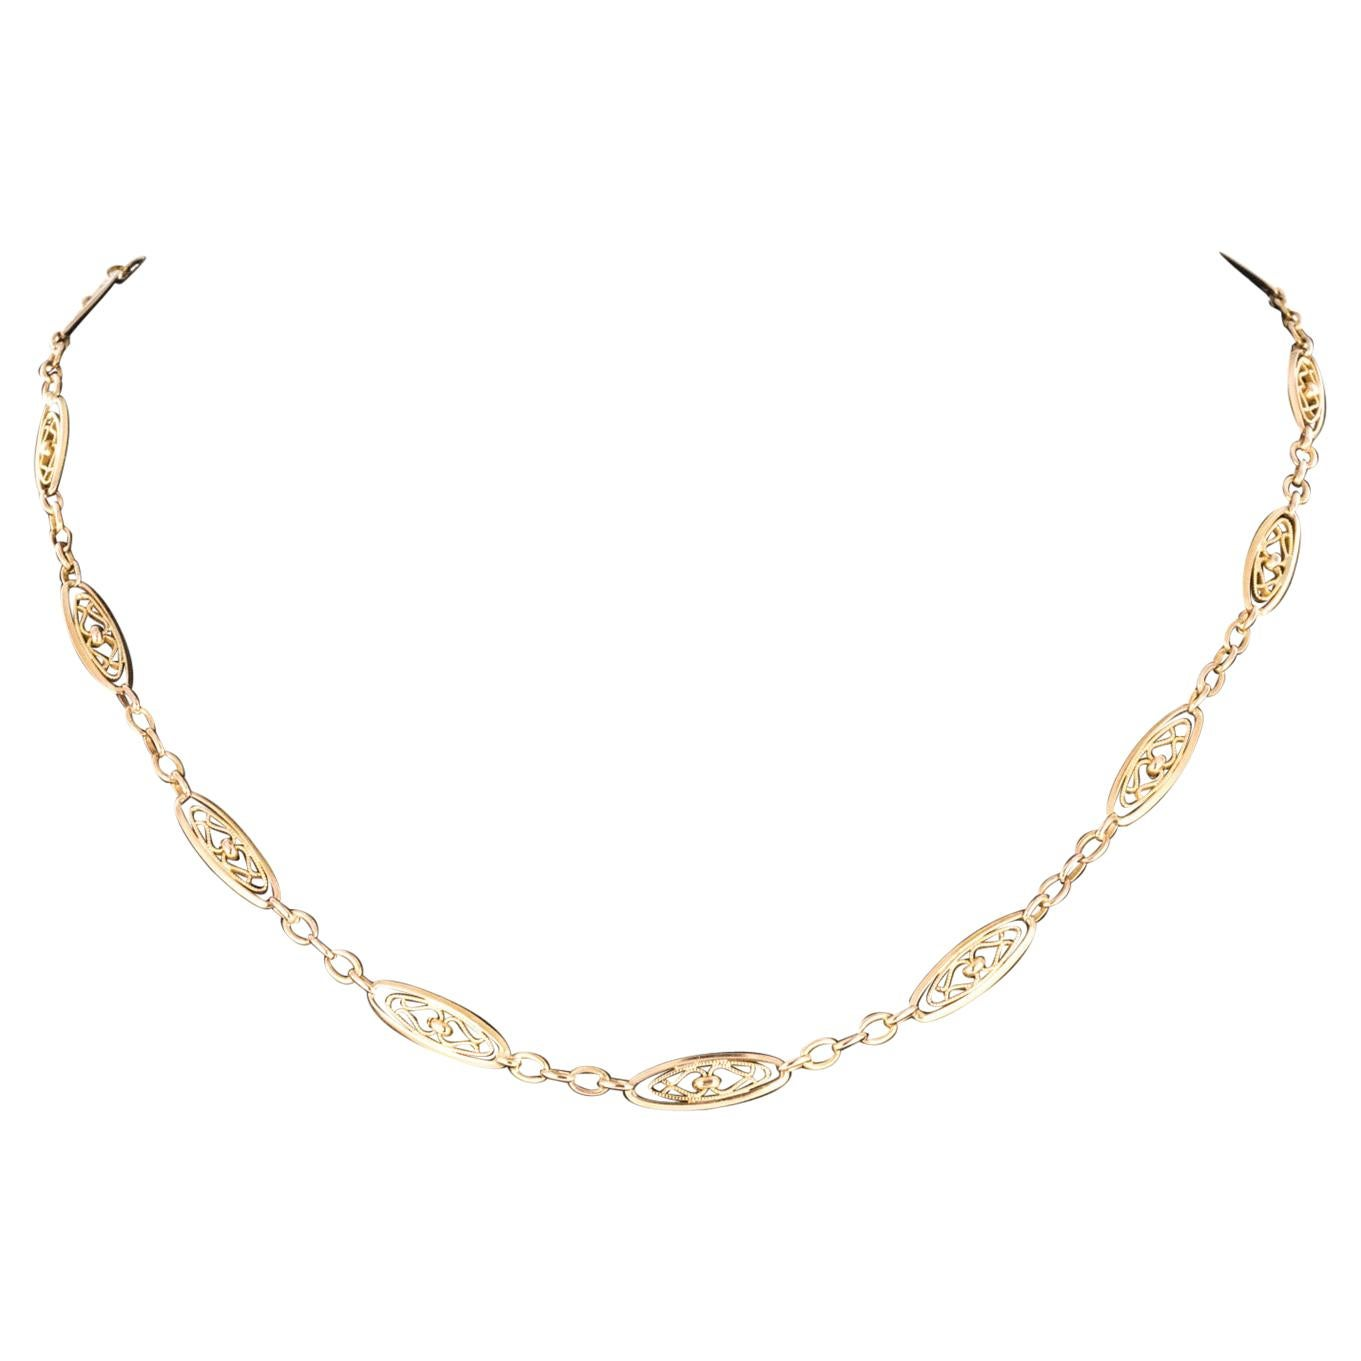 French 19th Century 18 Karat Rose Gold Chain Necklace